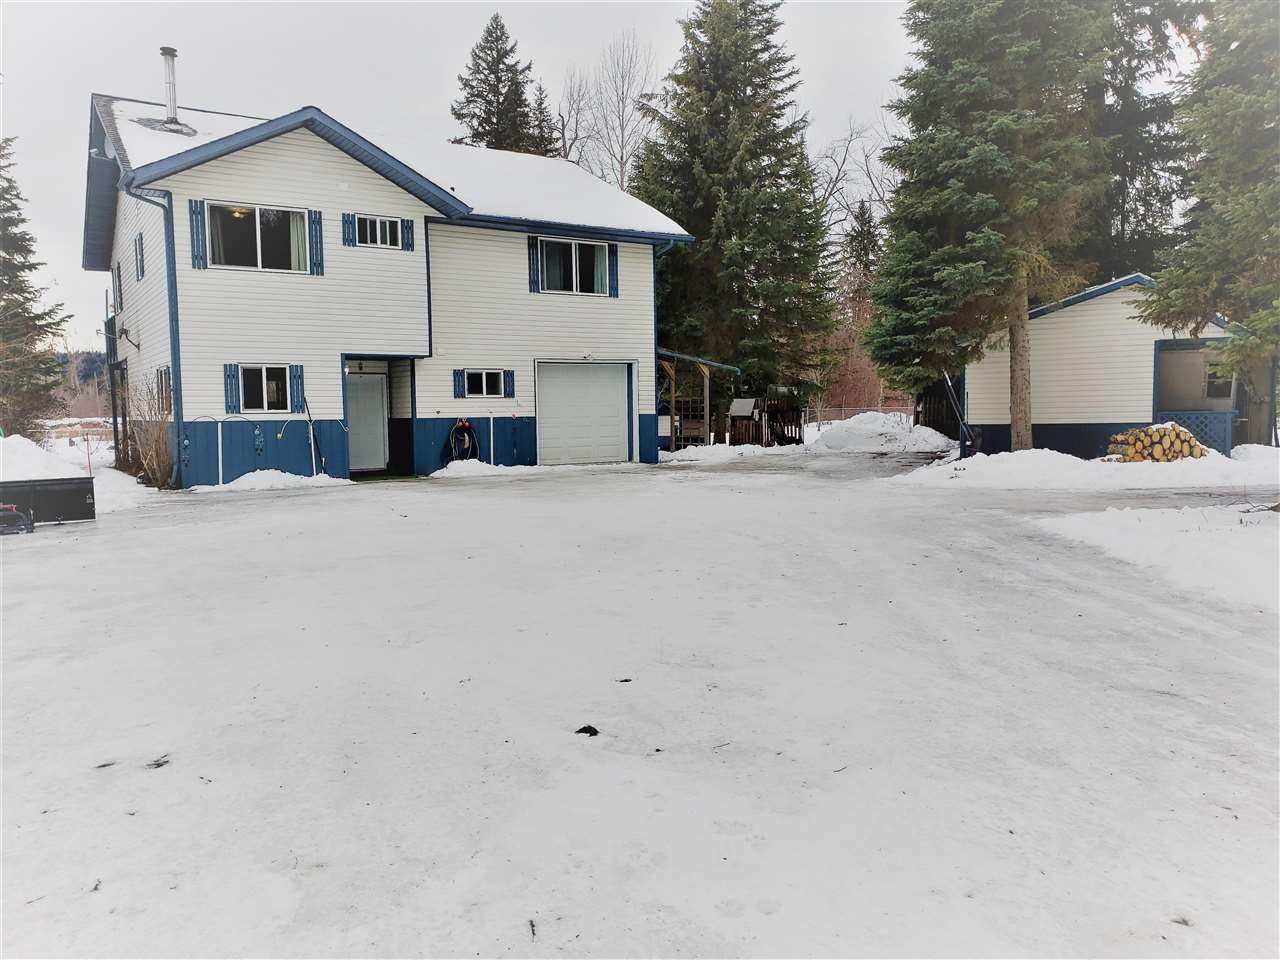 Main Photo: 3435 ISLAND PARK Drive in Prince George: Miworth House for sale (PG Rural West (Zone 77))  : MLS®# R2545788